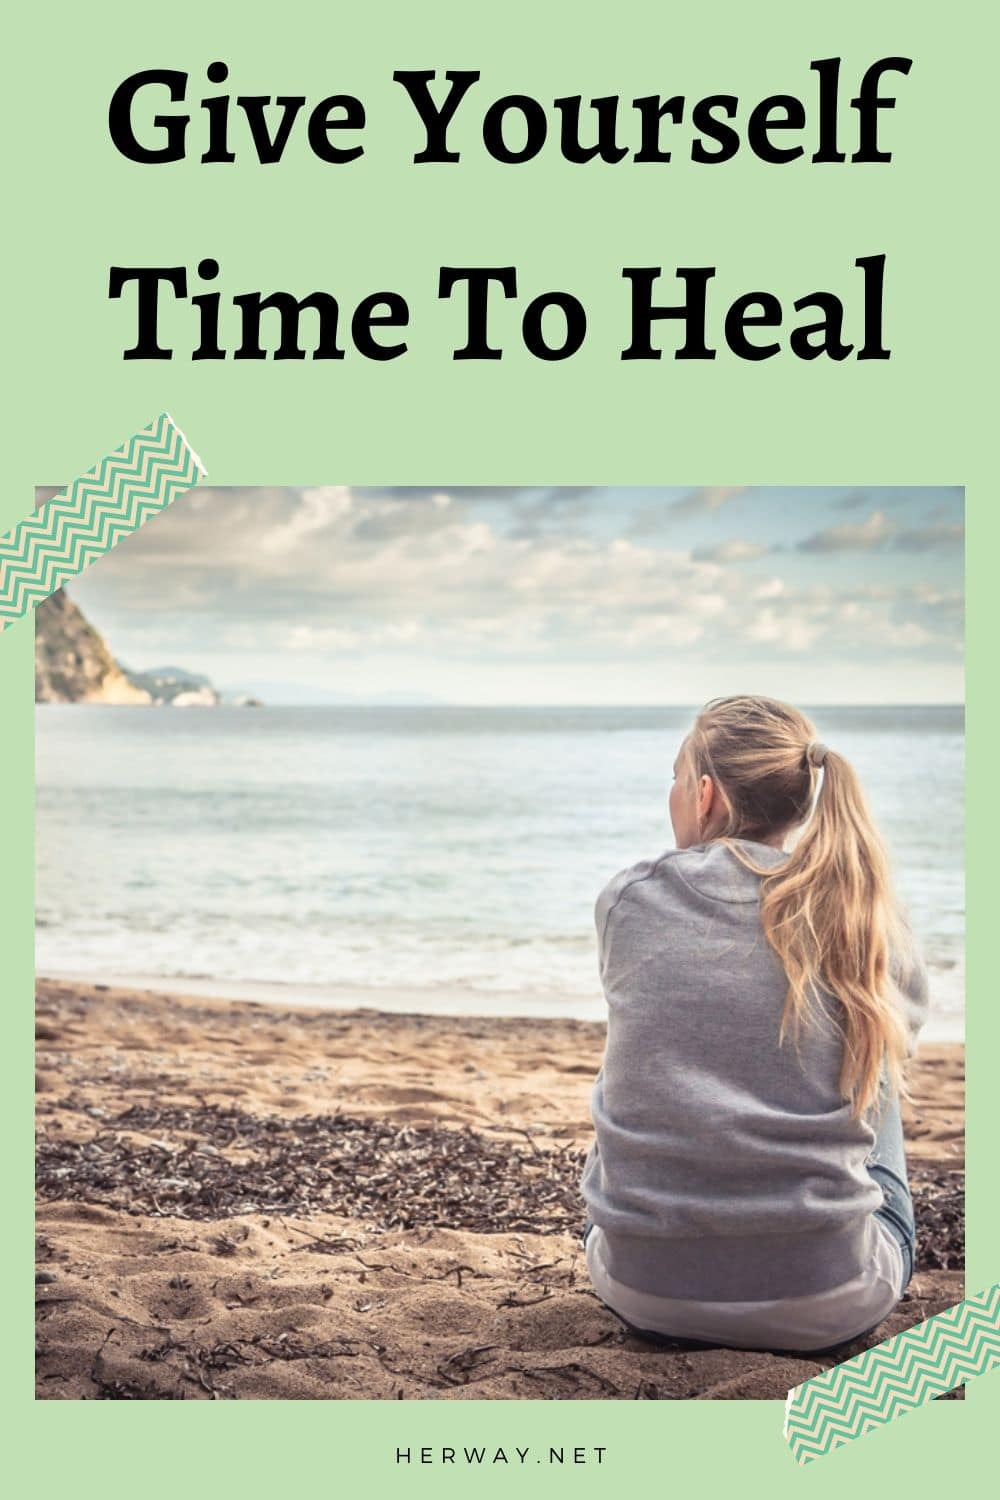 Give Yourself Time To Heal